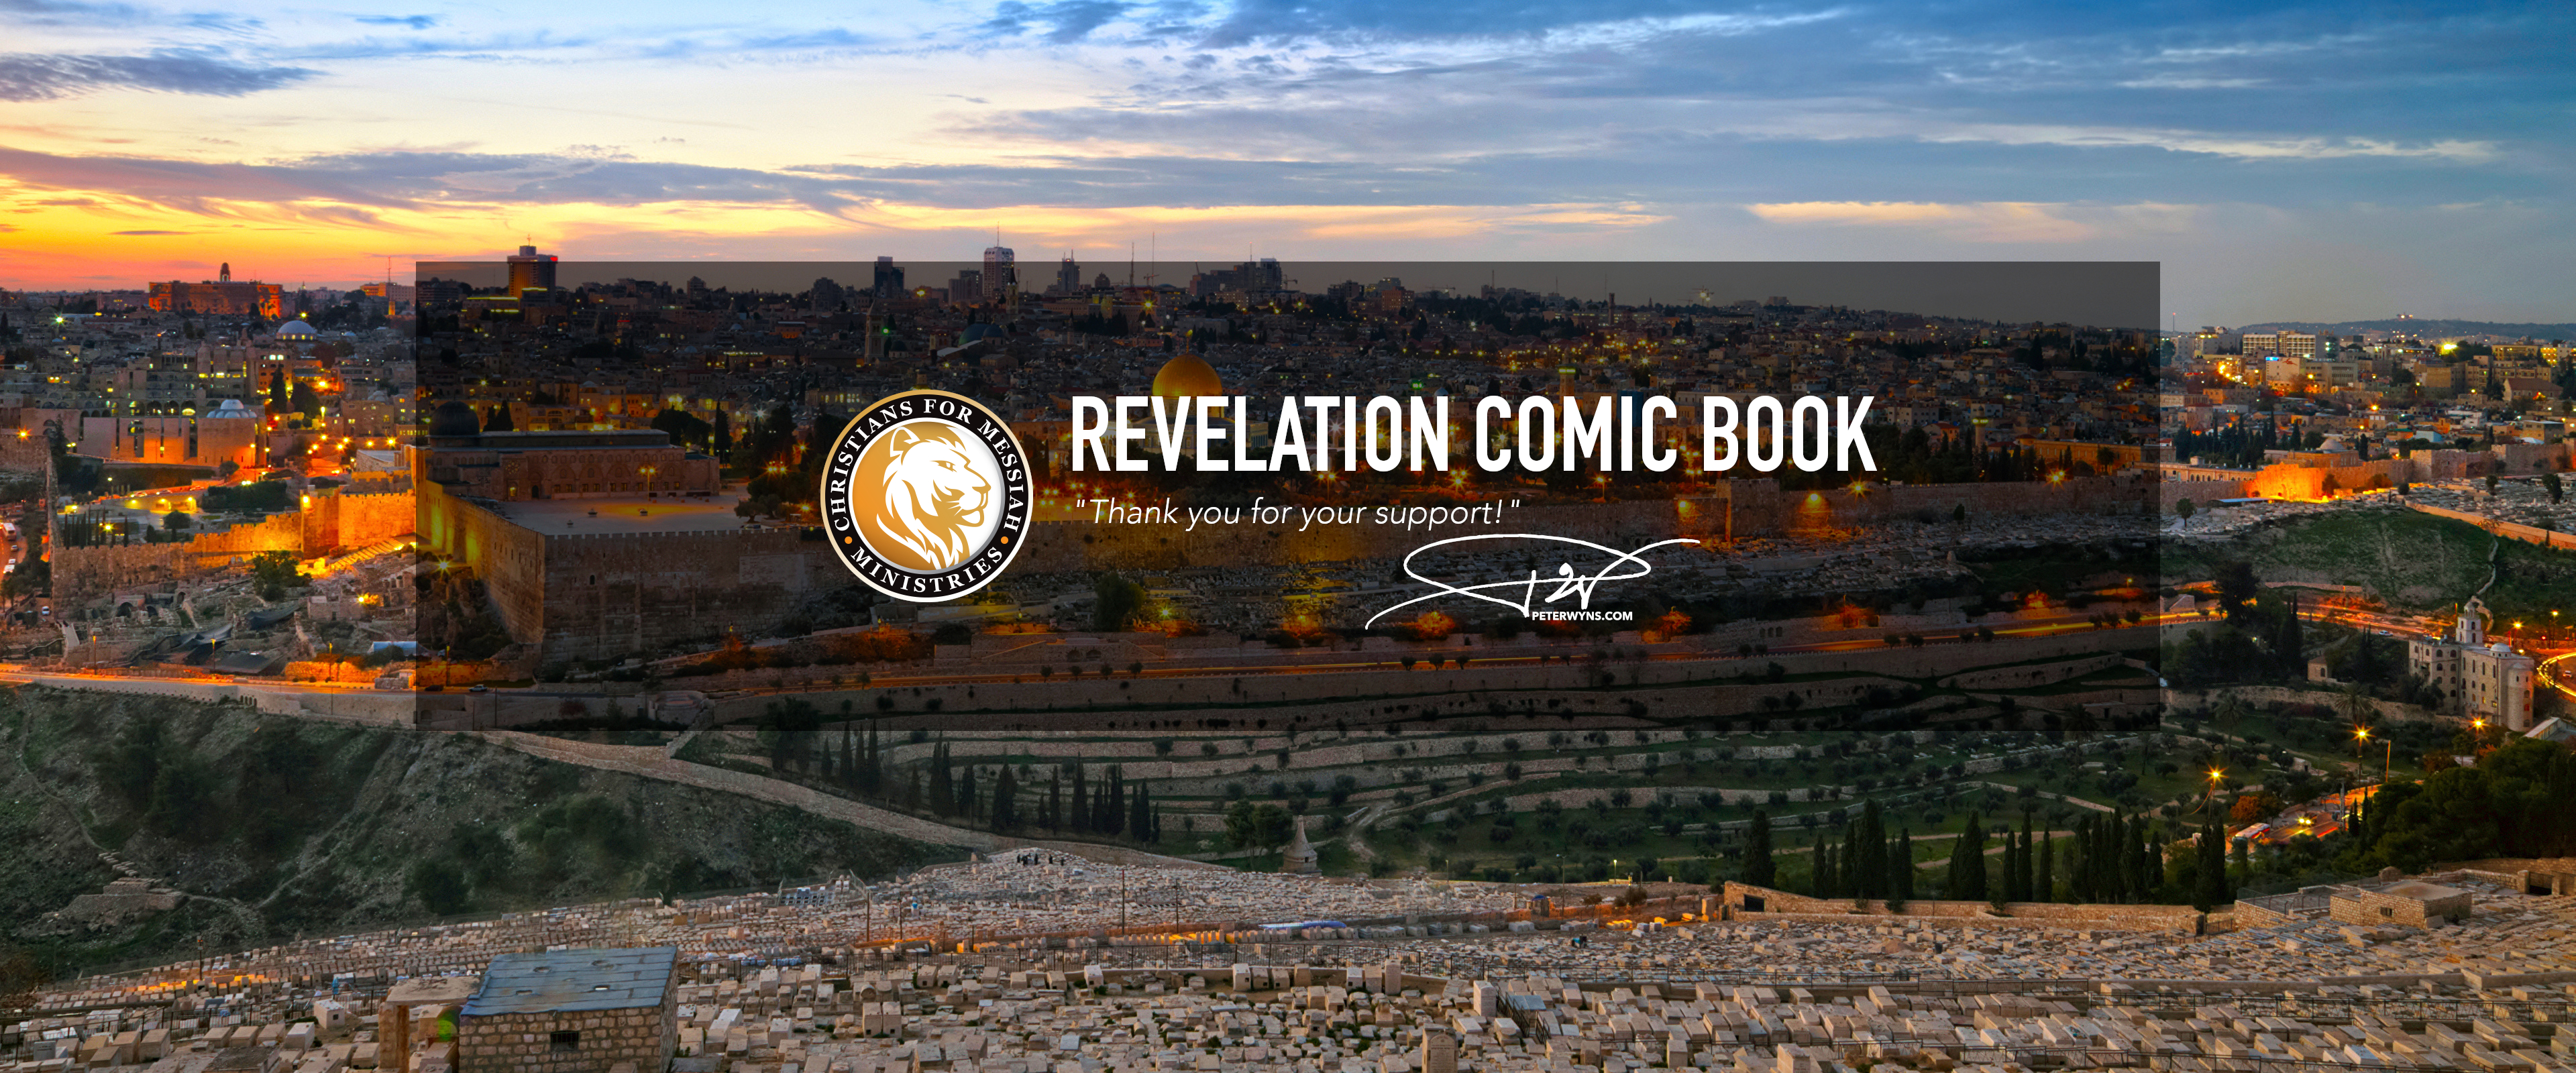 revelation comic book banner